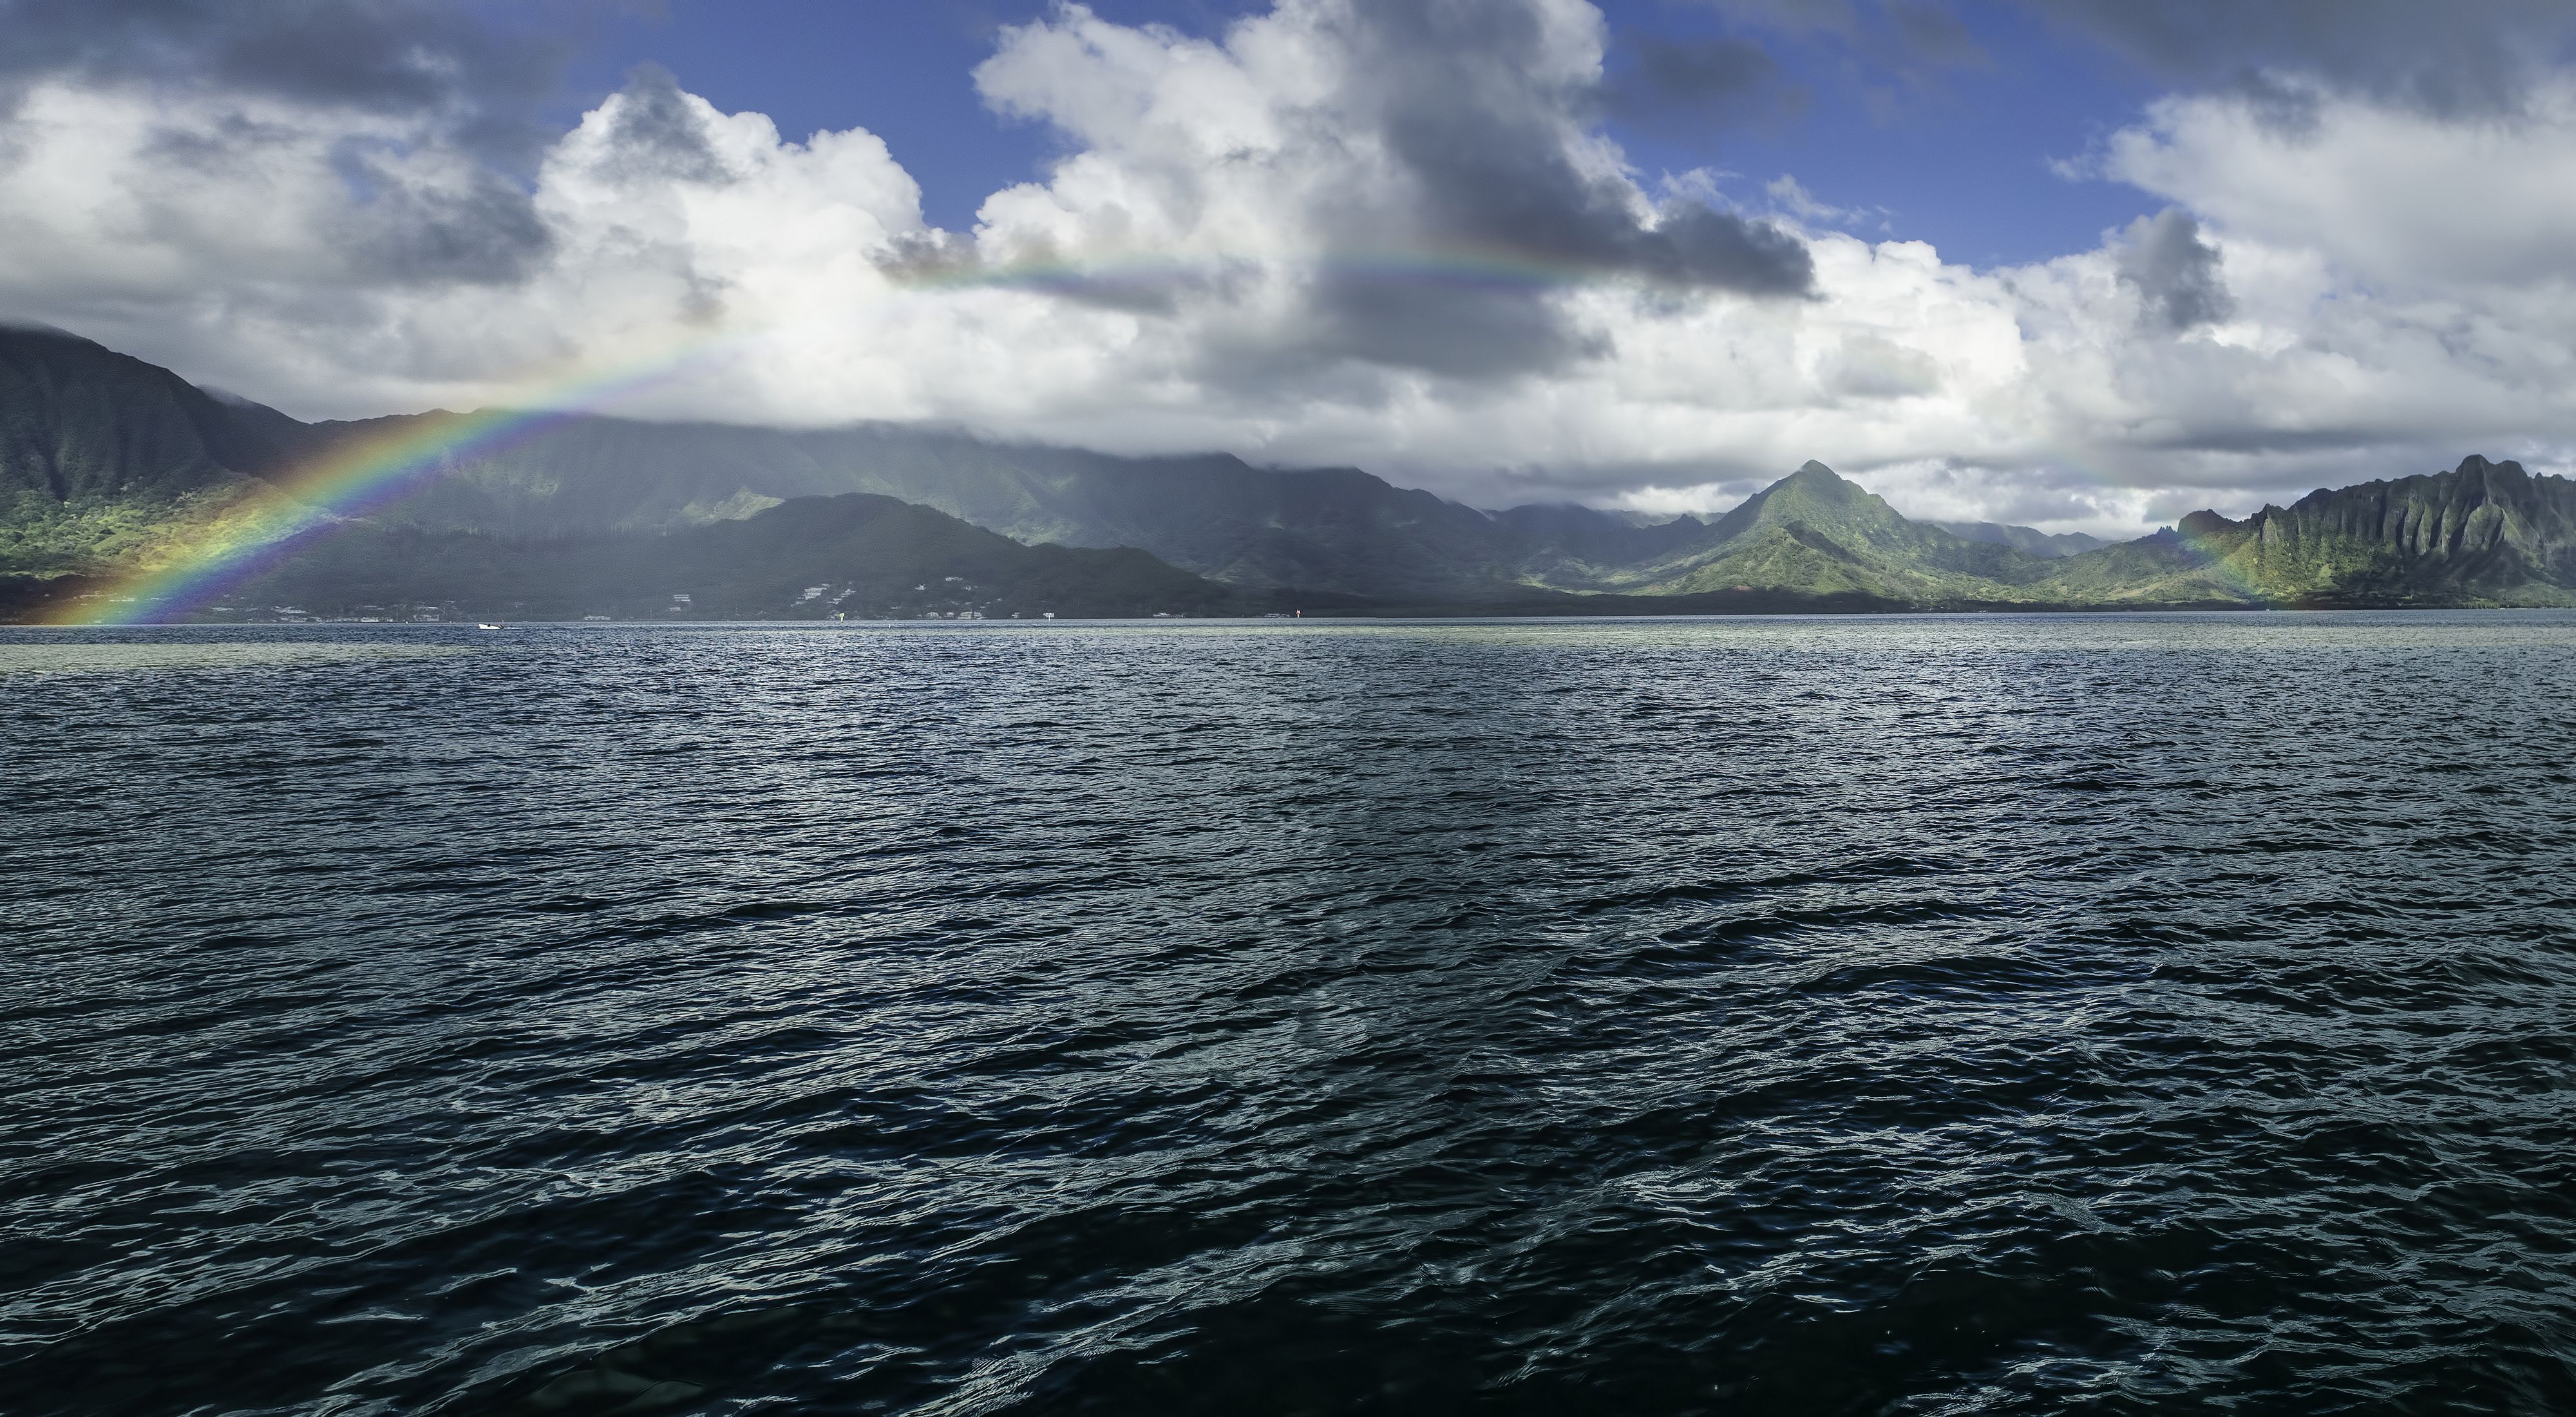 a rainbow arching over mountains and sea